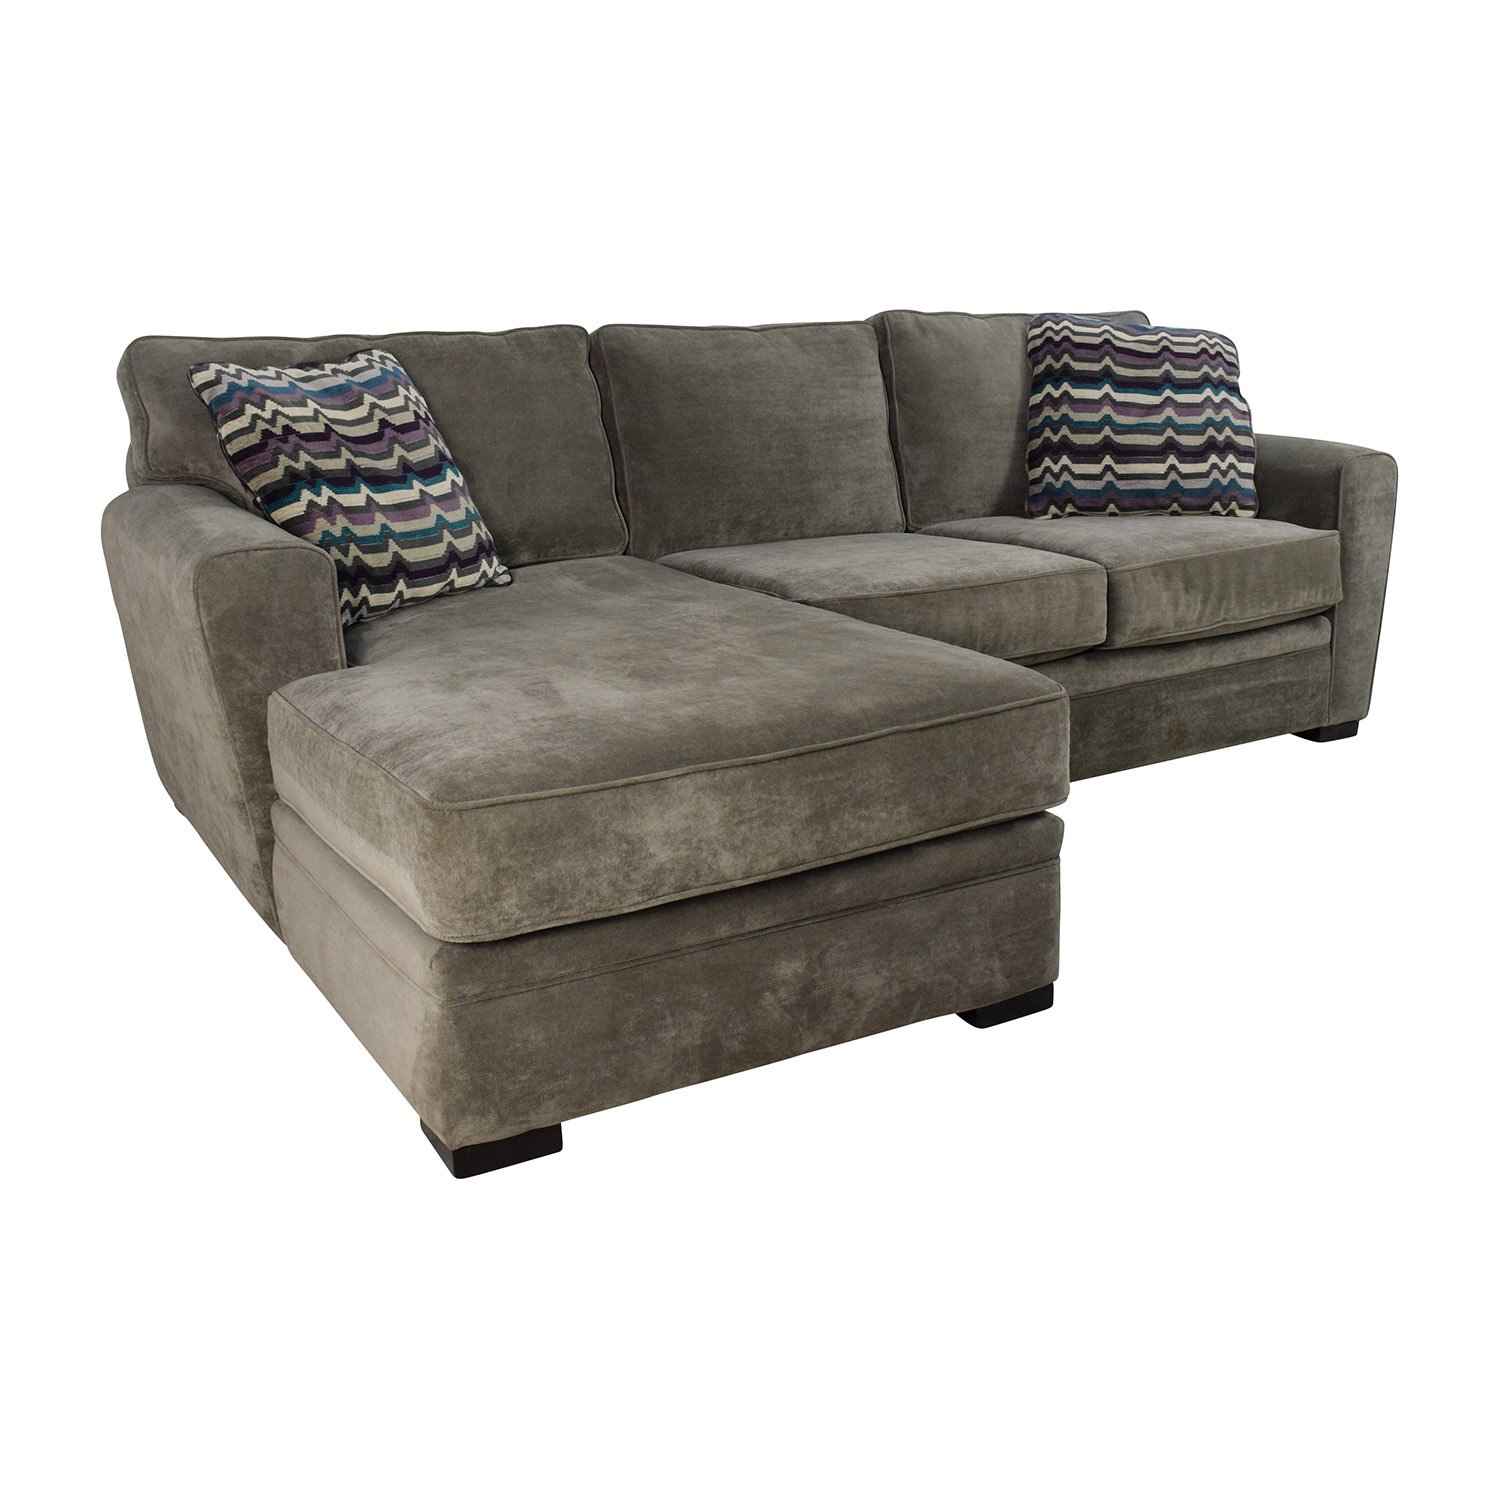 Raymour & Flanigan Raymour & Flanigan Artemis II Microfiber Sectional Sofa on sale